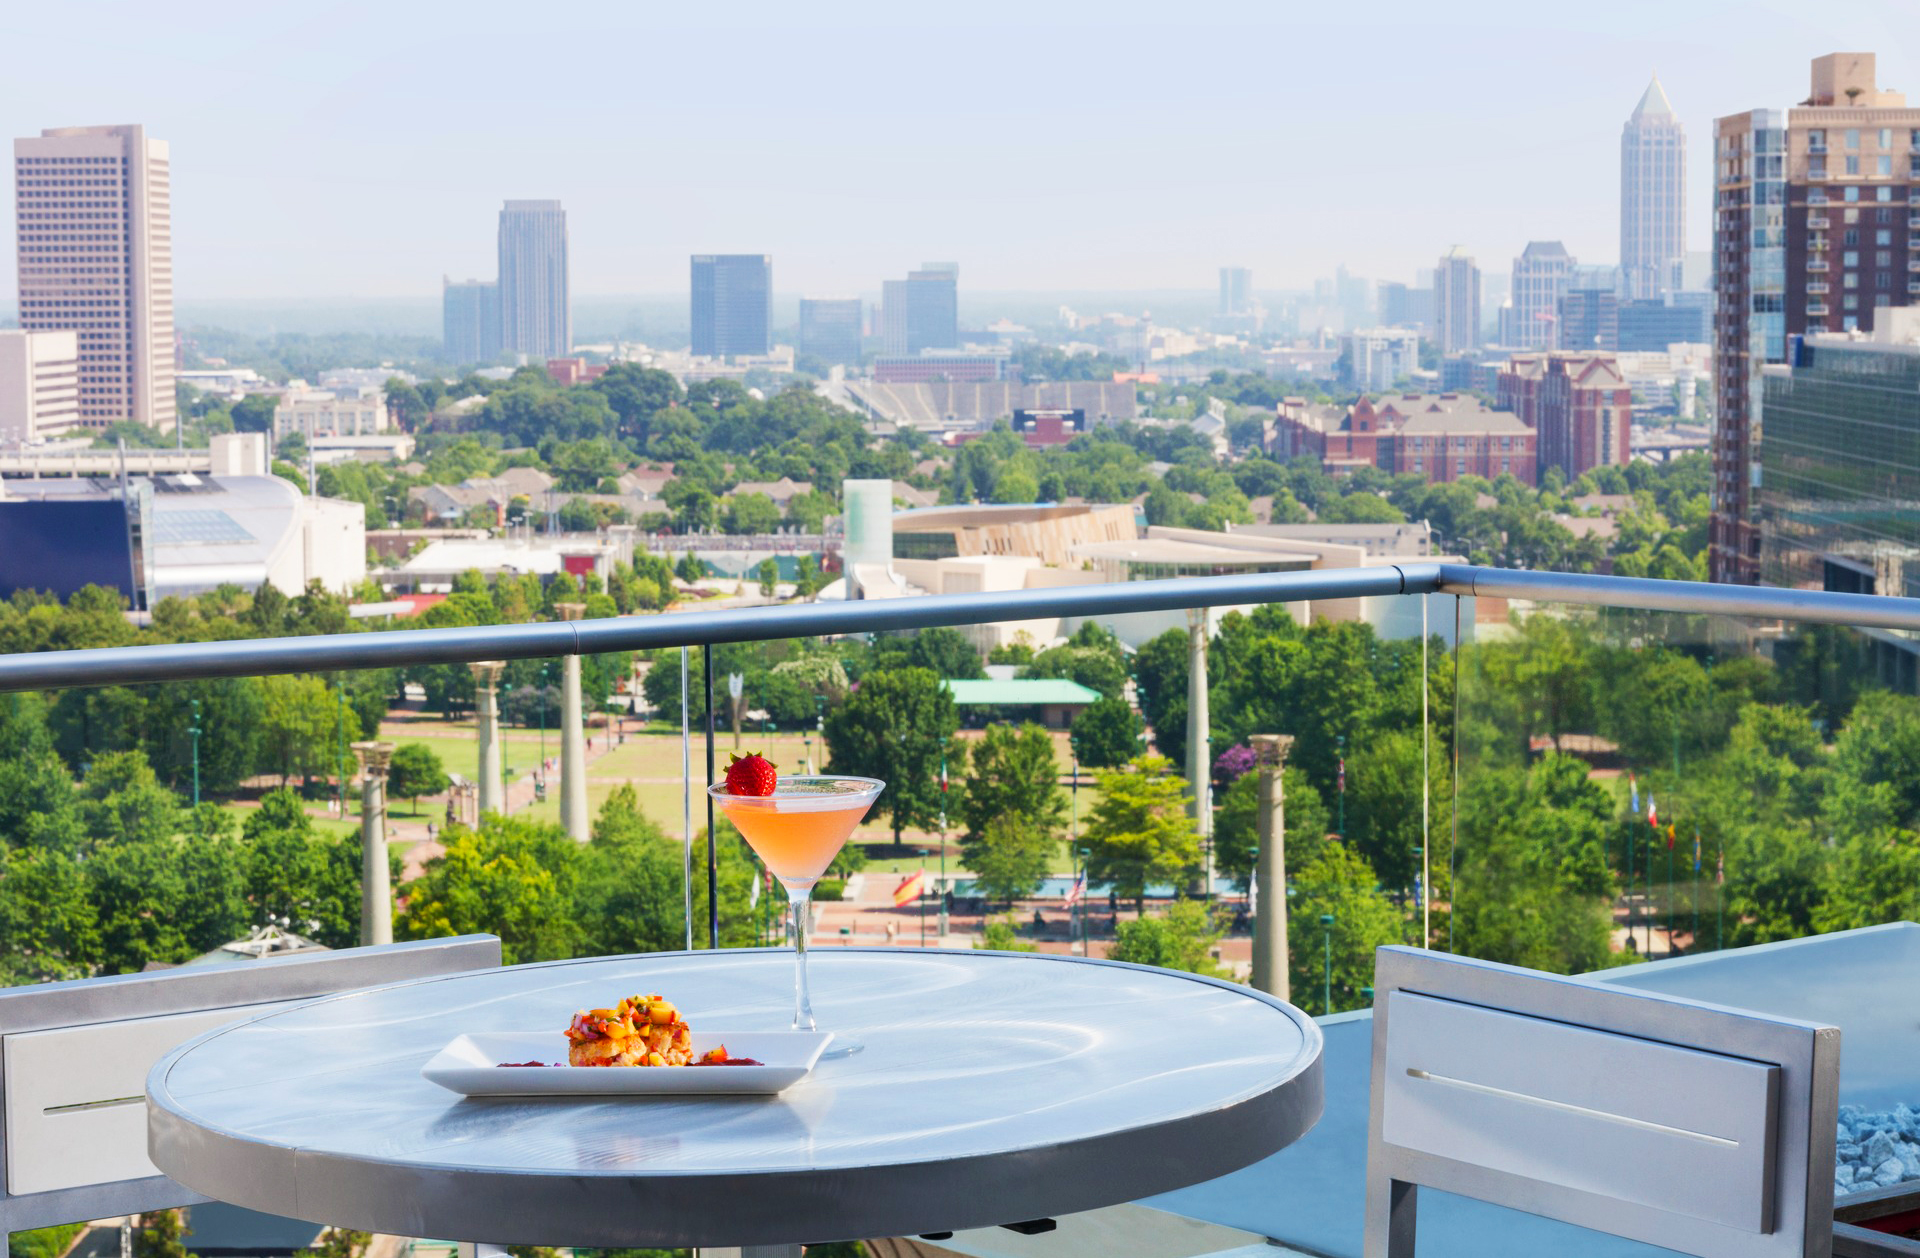 14 Must Visit Rooftop Bars Restaurants In Atlanta Zagat